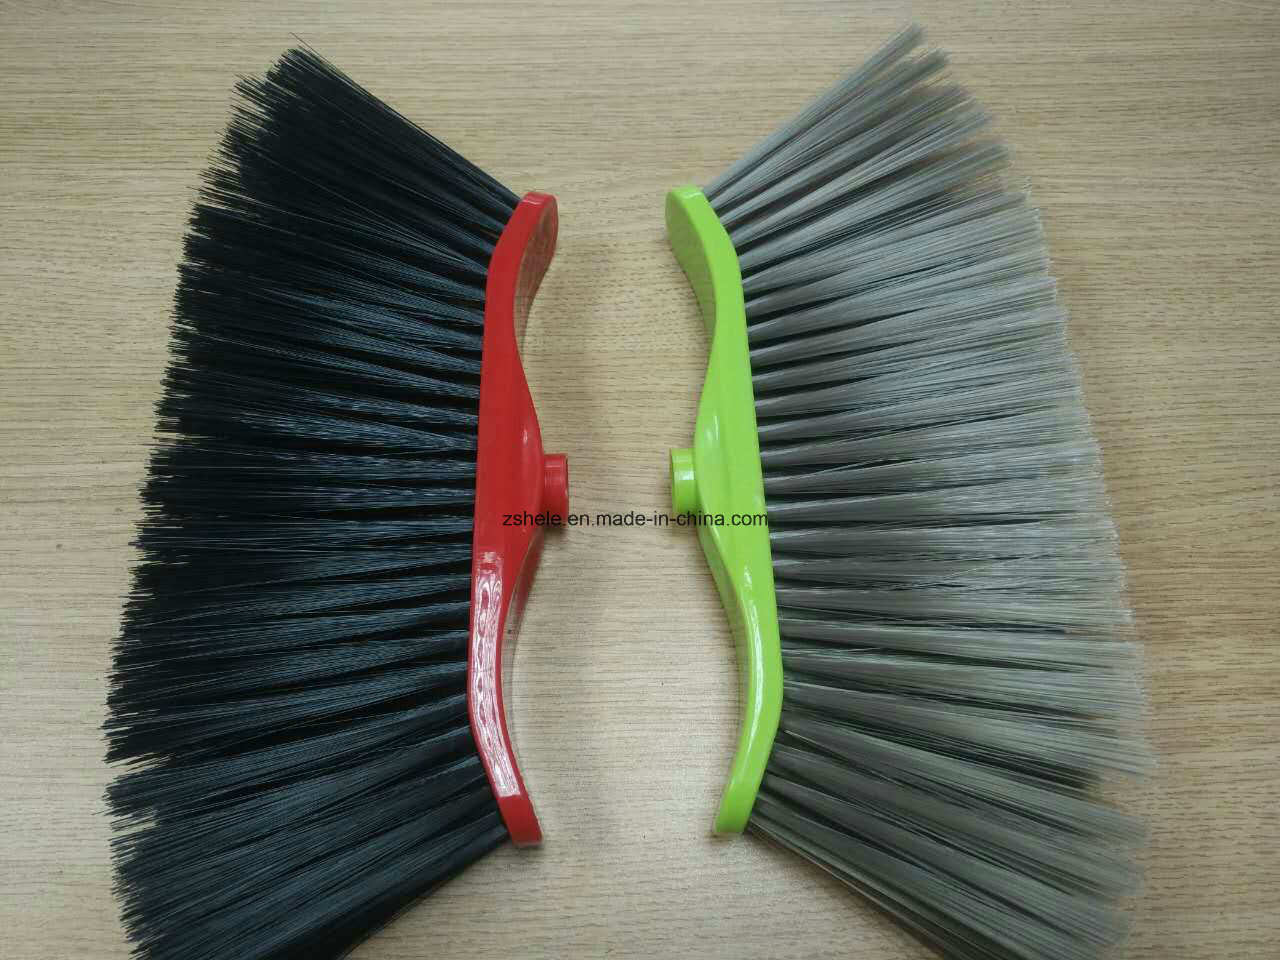 Brooms to Sweep Roads (HL-A100)